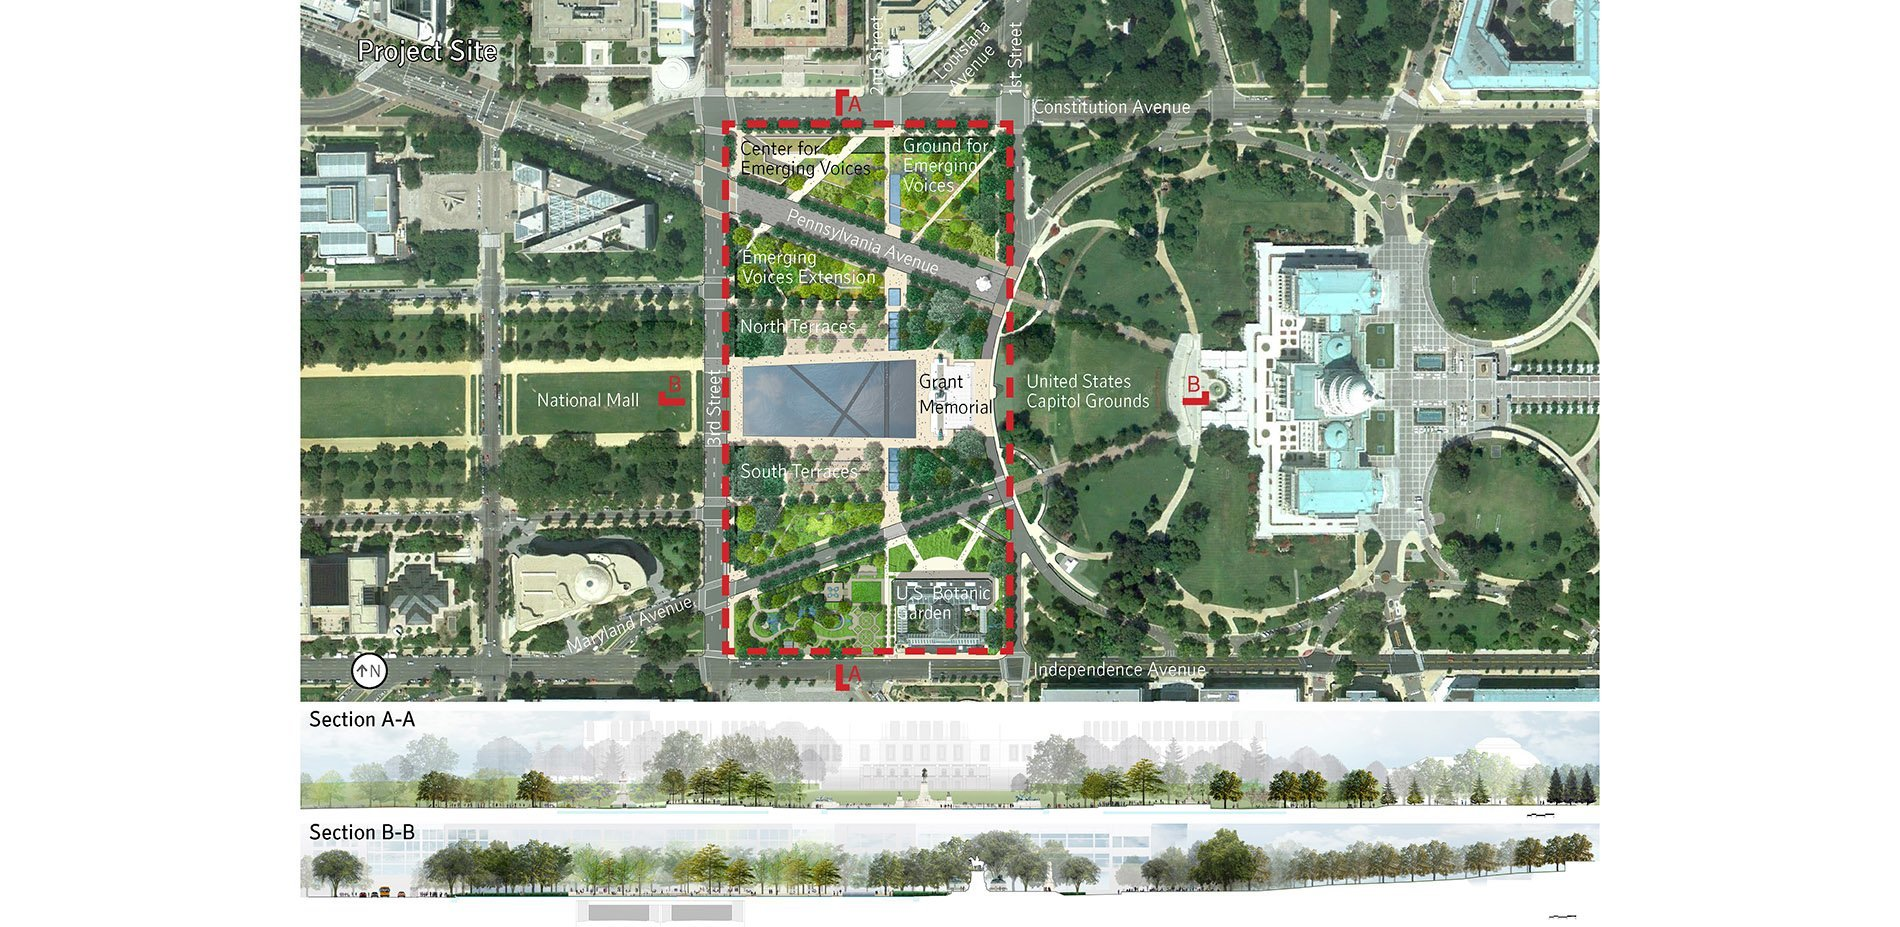 Unified Ground Union Square National Mall Competition 2014 ASLA